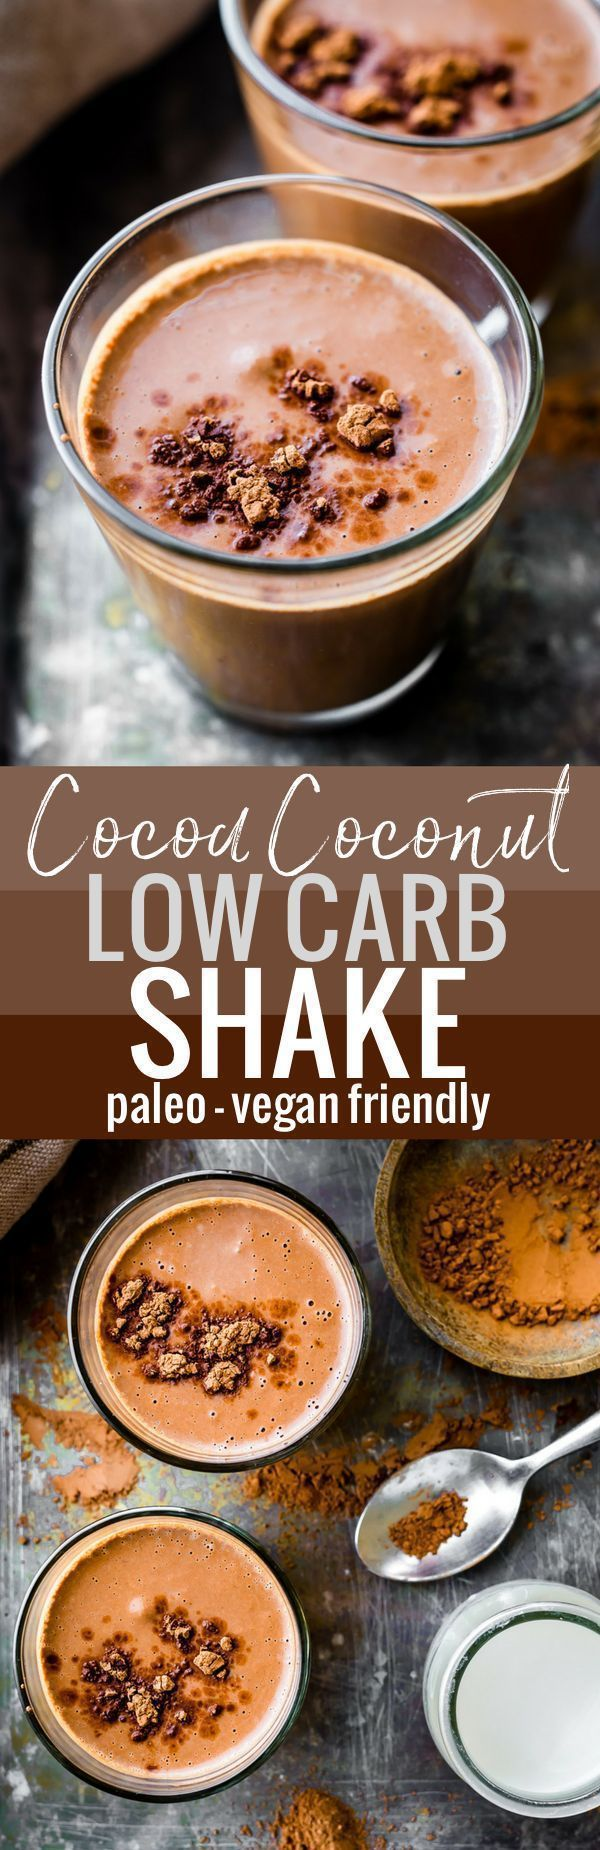 This low carb shake recipe, full of healthy coconut cream and unsweetened chocolate cocoa, will fuel your body for the day! The health benefits of this delicious keto and paleo shake recipe will keep you energized and nourished. http://WWW.COTTERCRUNCH.COM?utm_content=buffer38121&utm_medium=social&utm_source=pinterest.com&utm_campaign=buffer